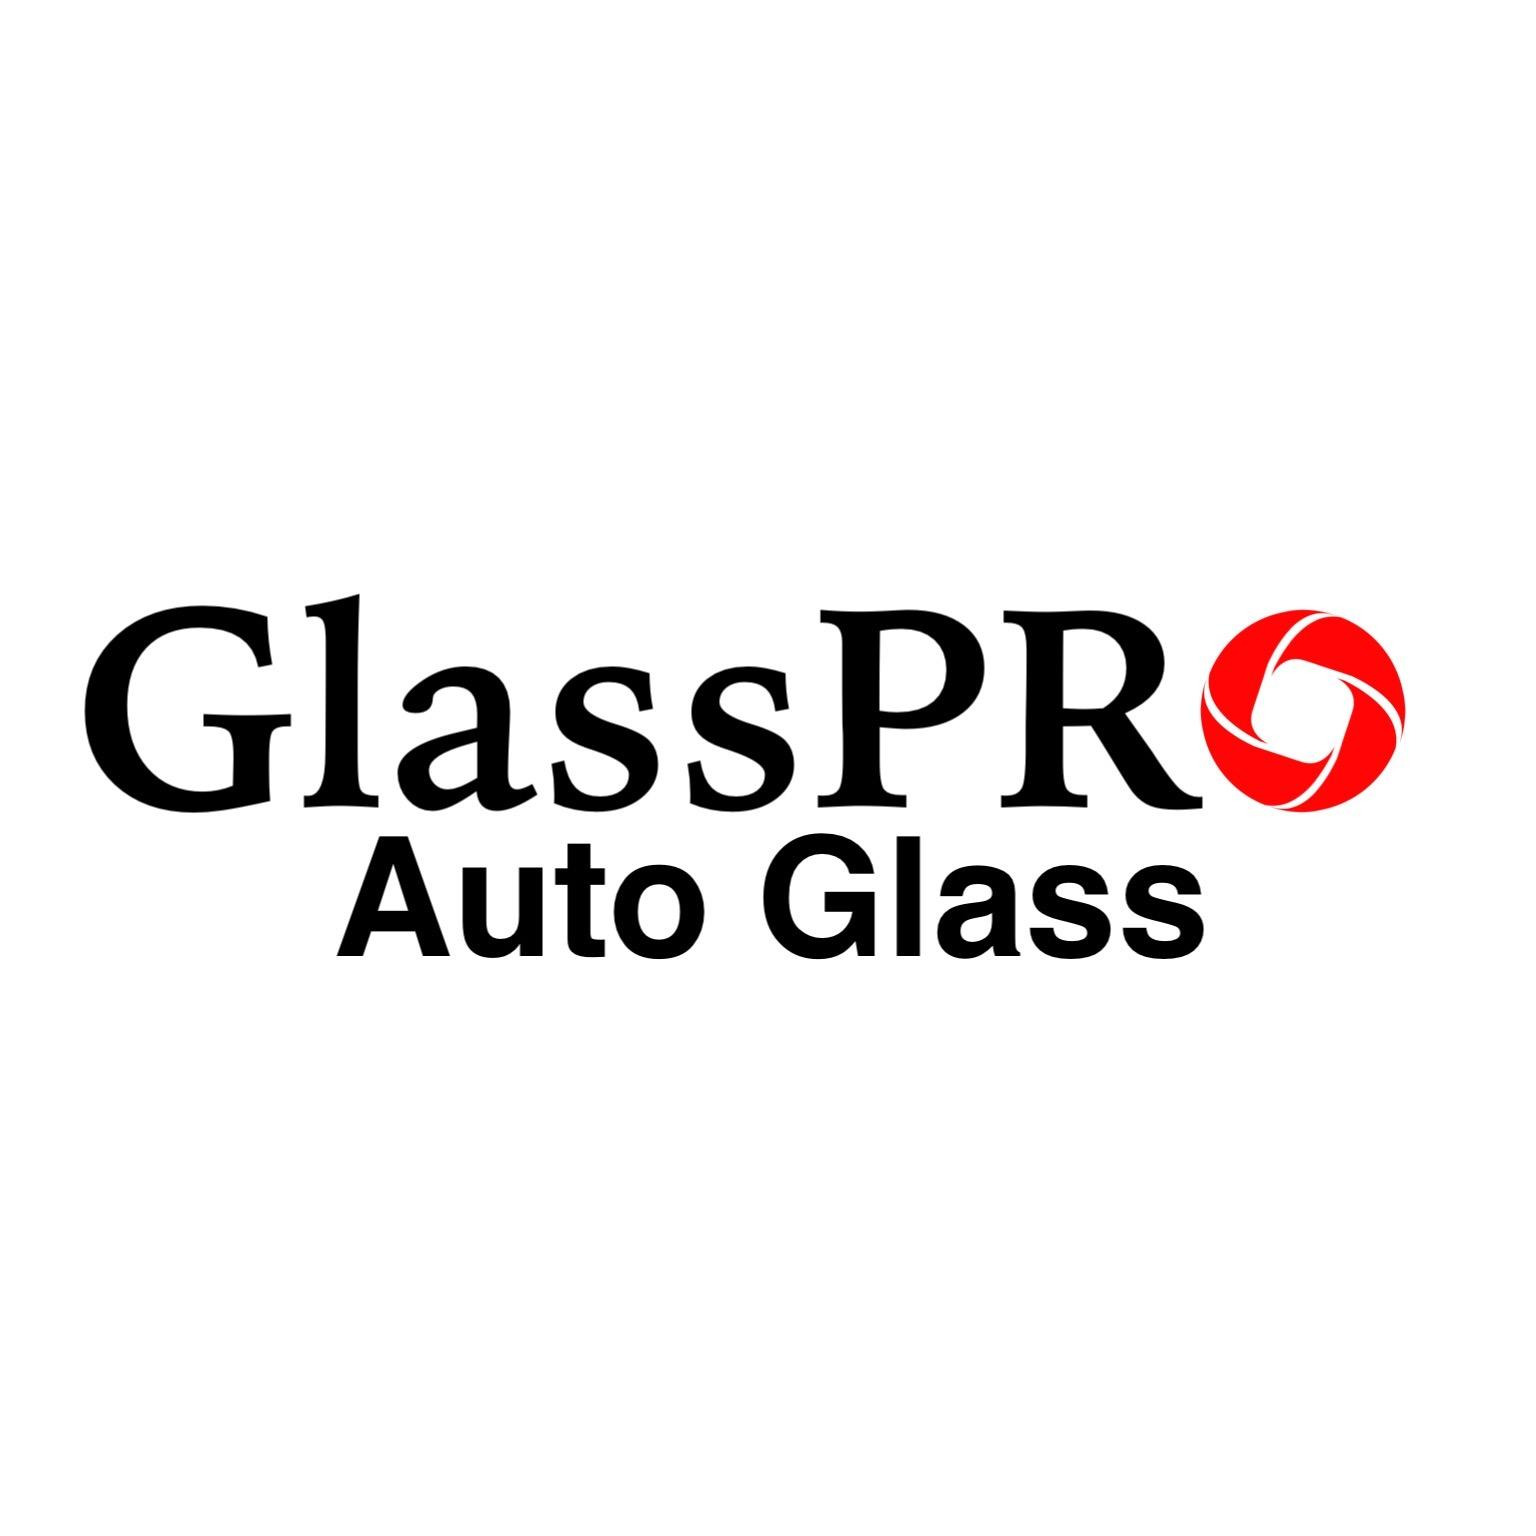 GlassPRO Auto Glass